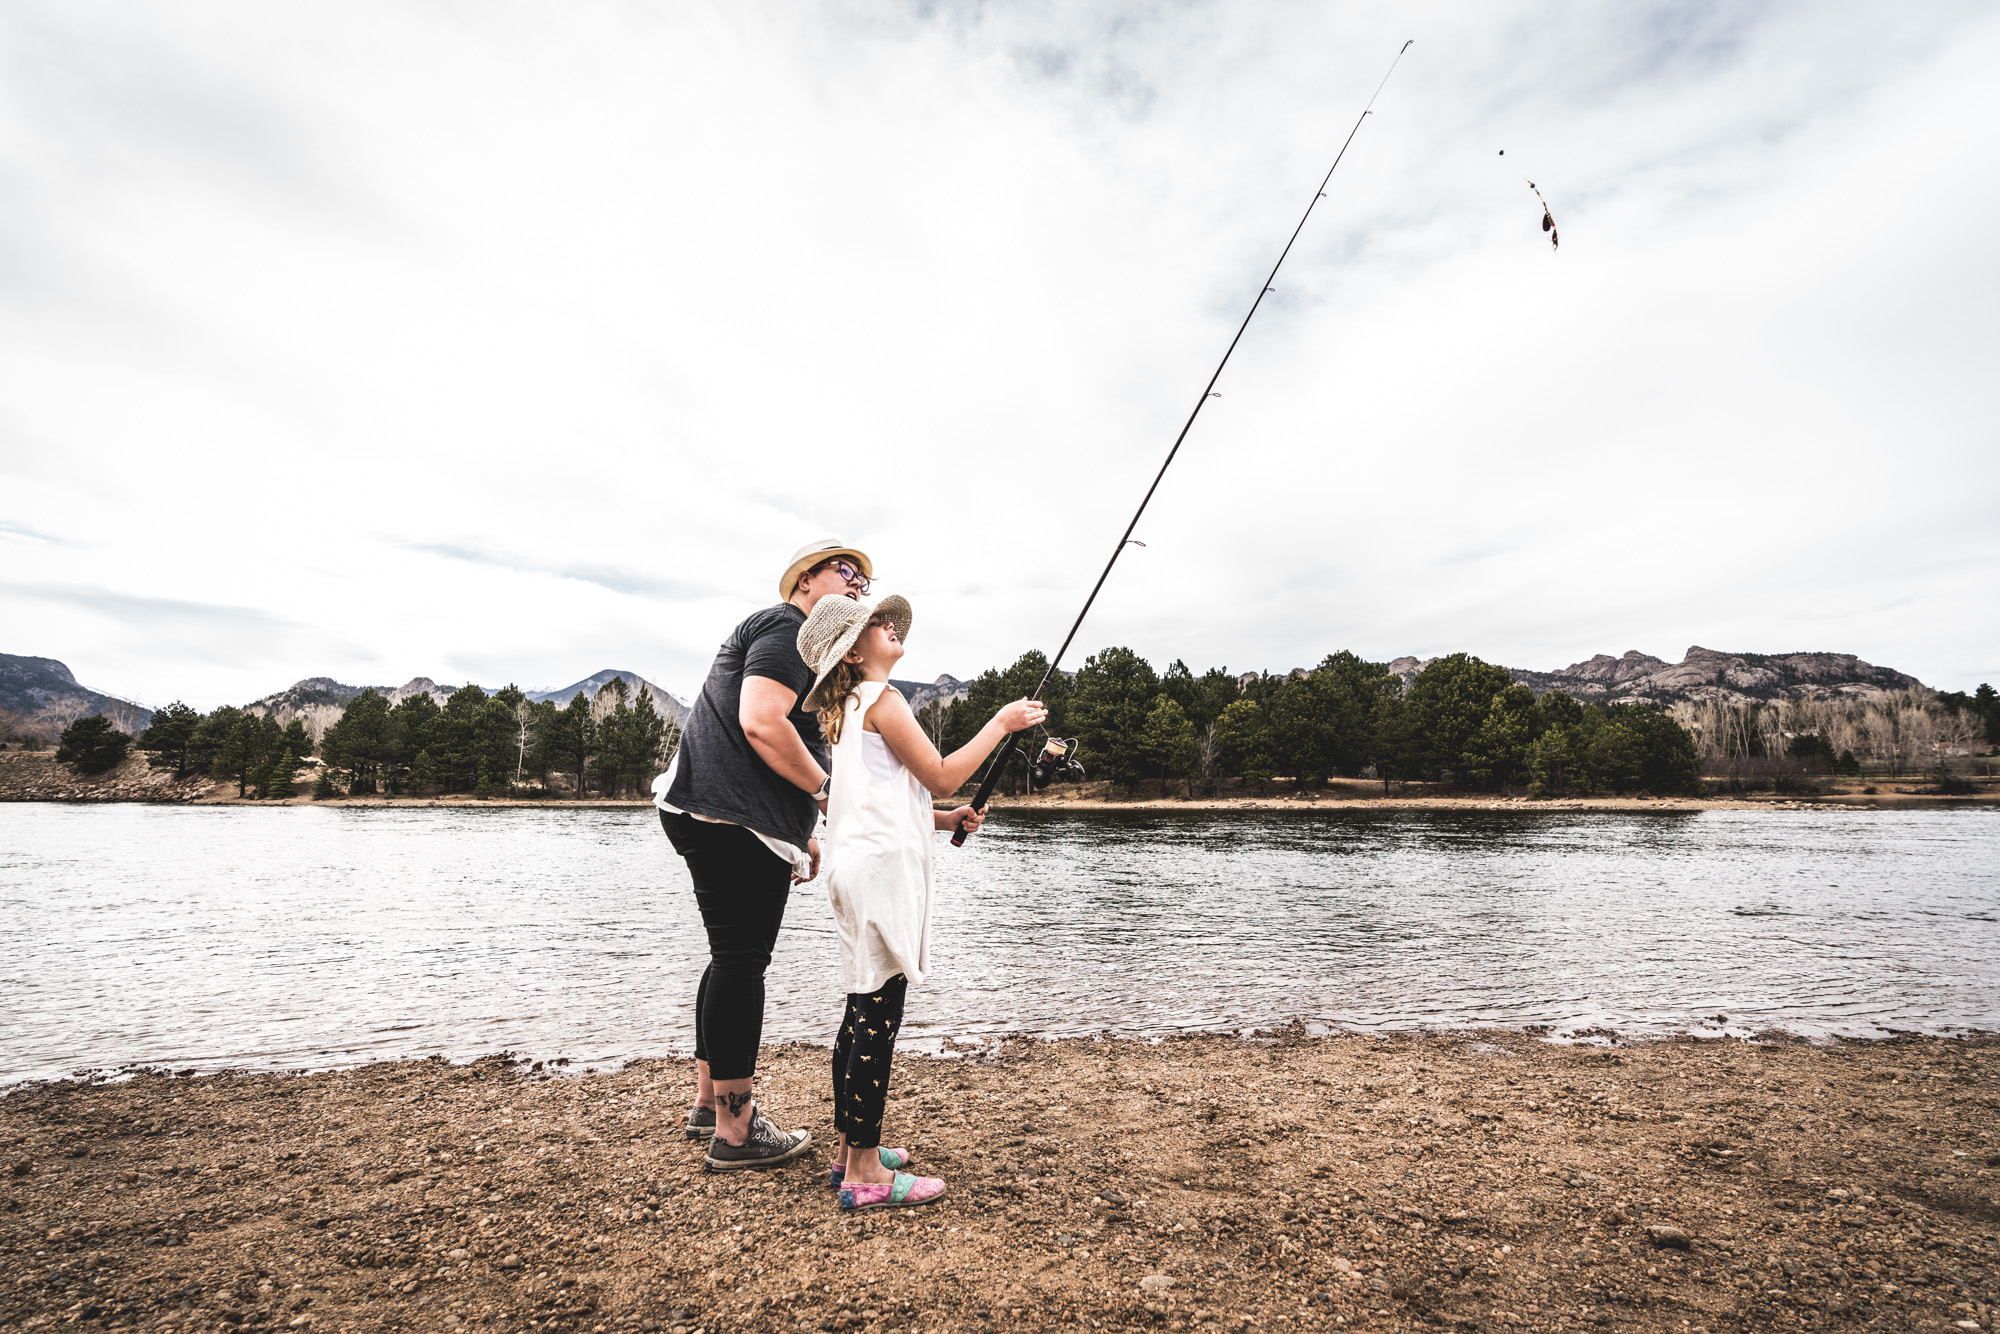 Color photo of a mother and daughter looking up to the top of the fishing pole held by the young girl. Taken in front of a lake in Estes Park, Colorado.